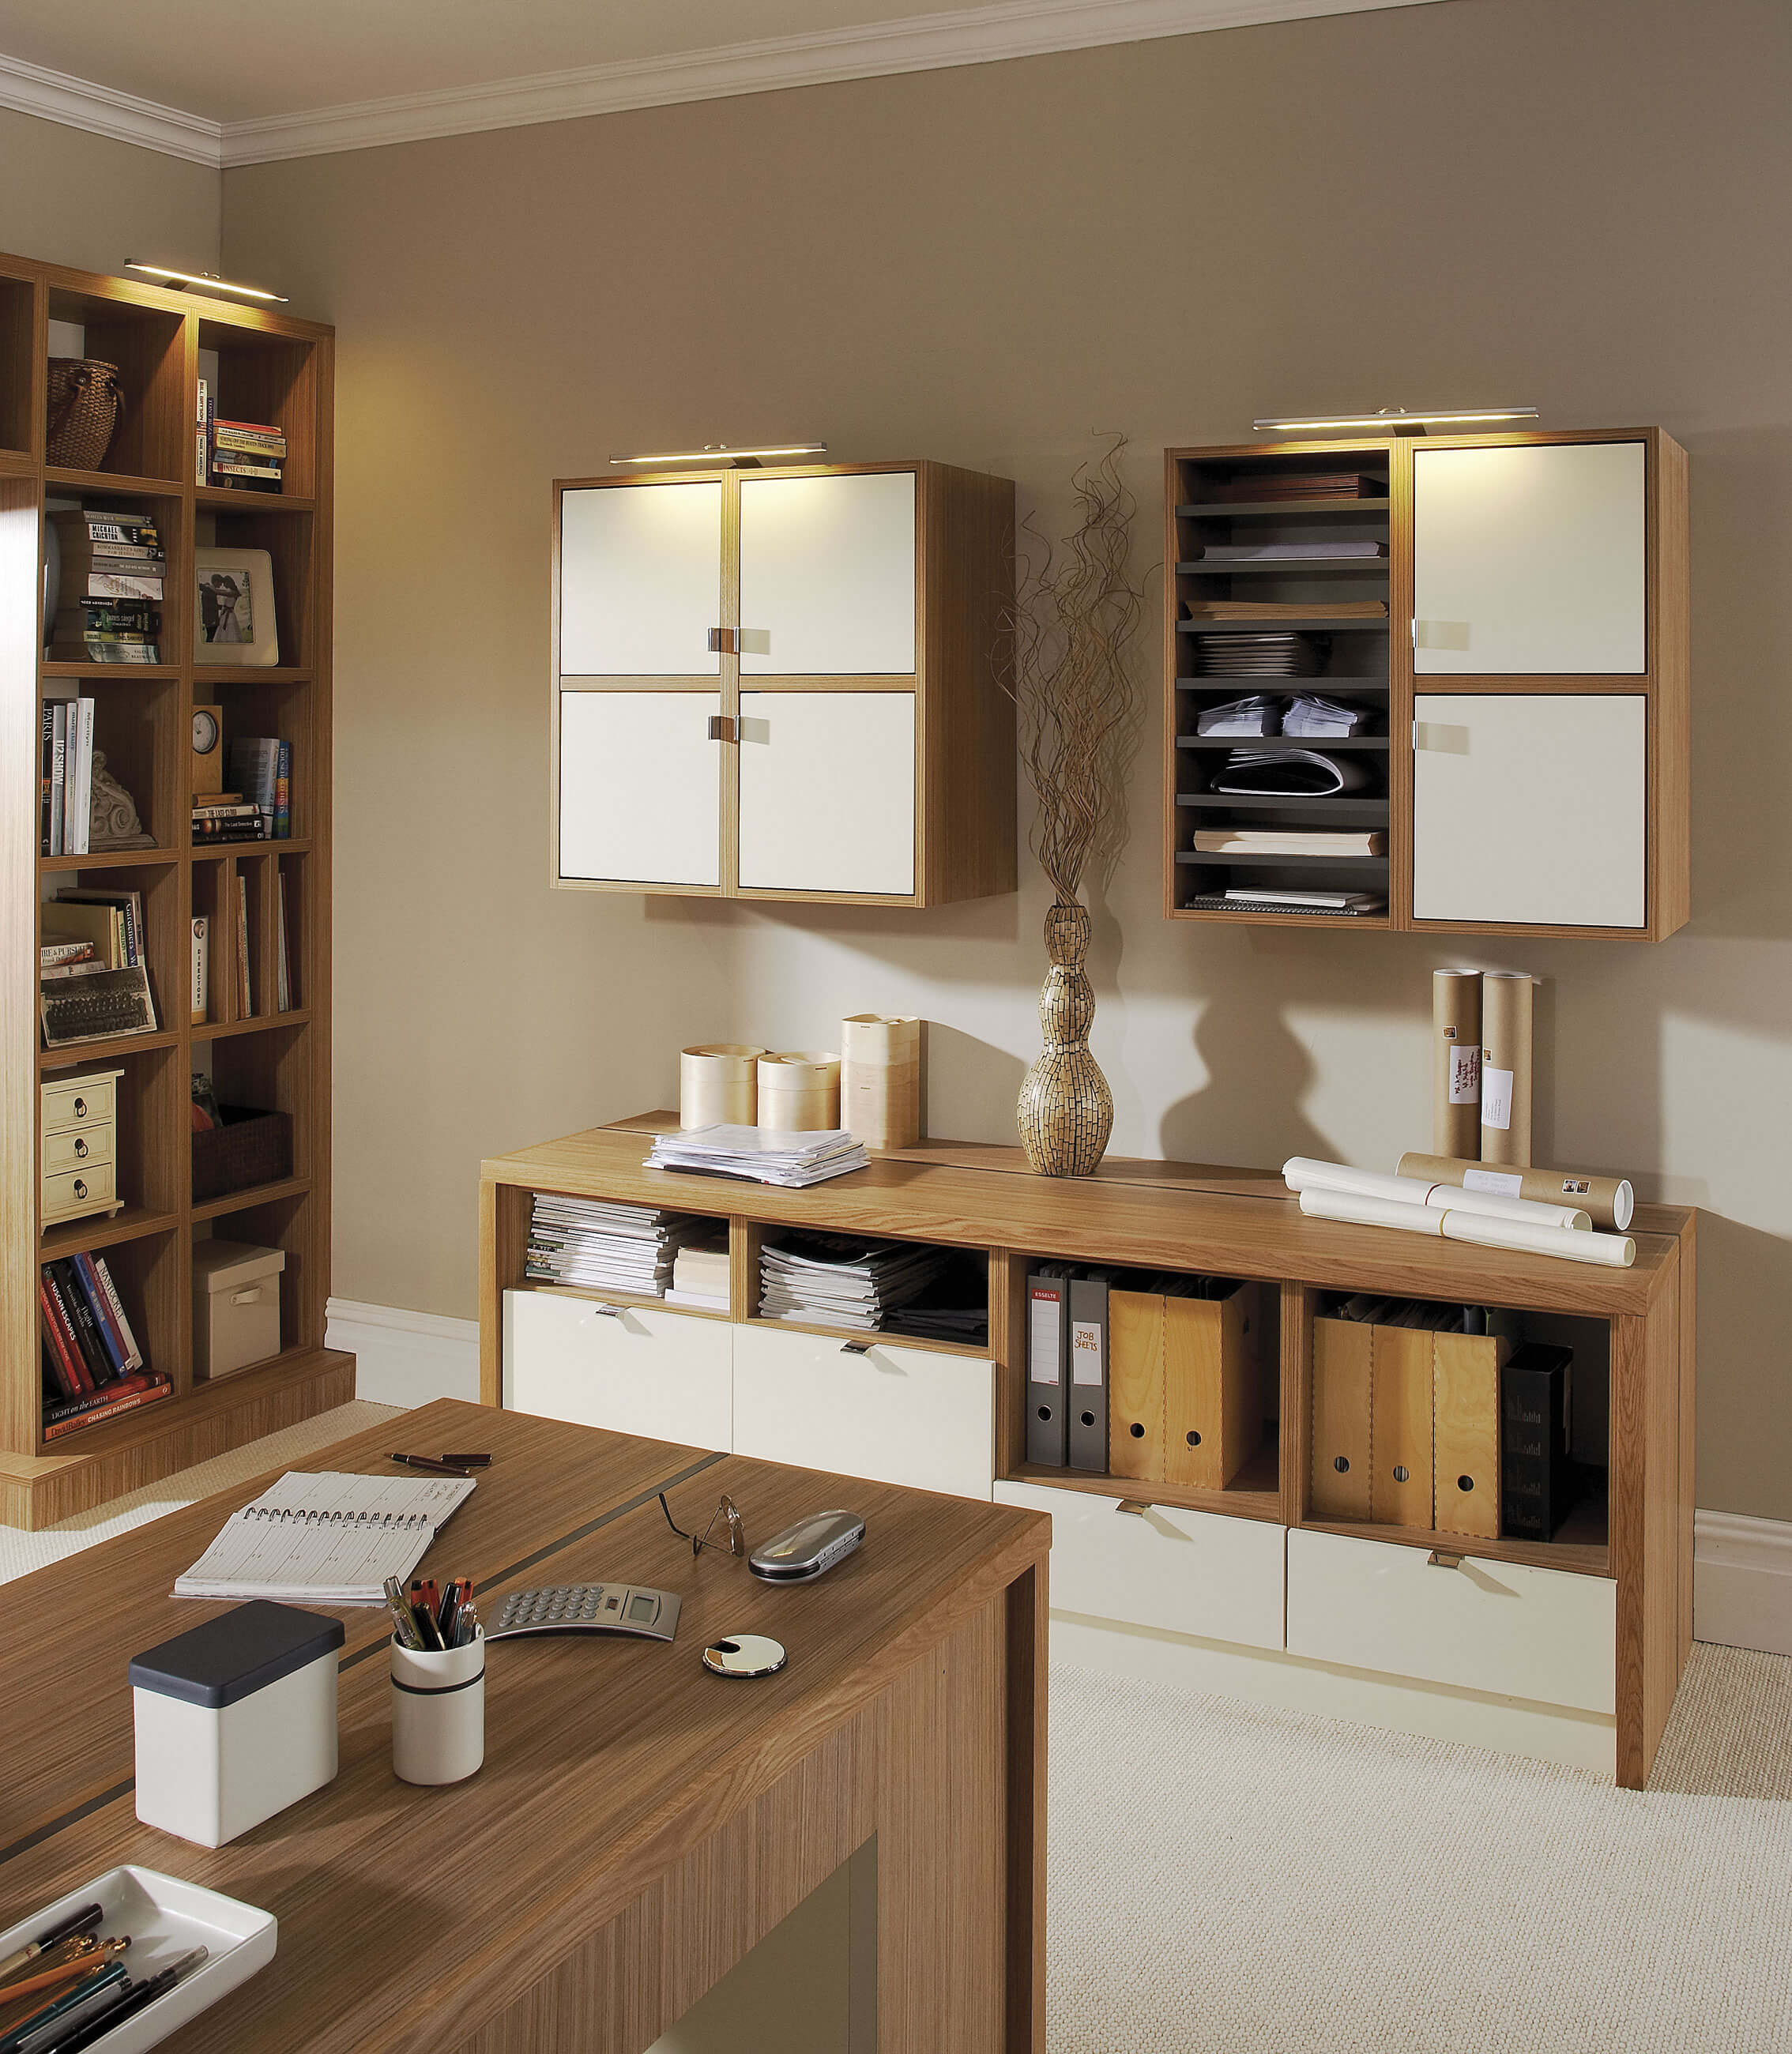 Handmade bespoke kitchens and furniture from Touchwood UK